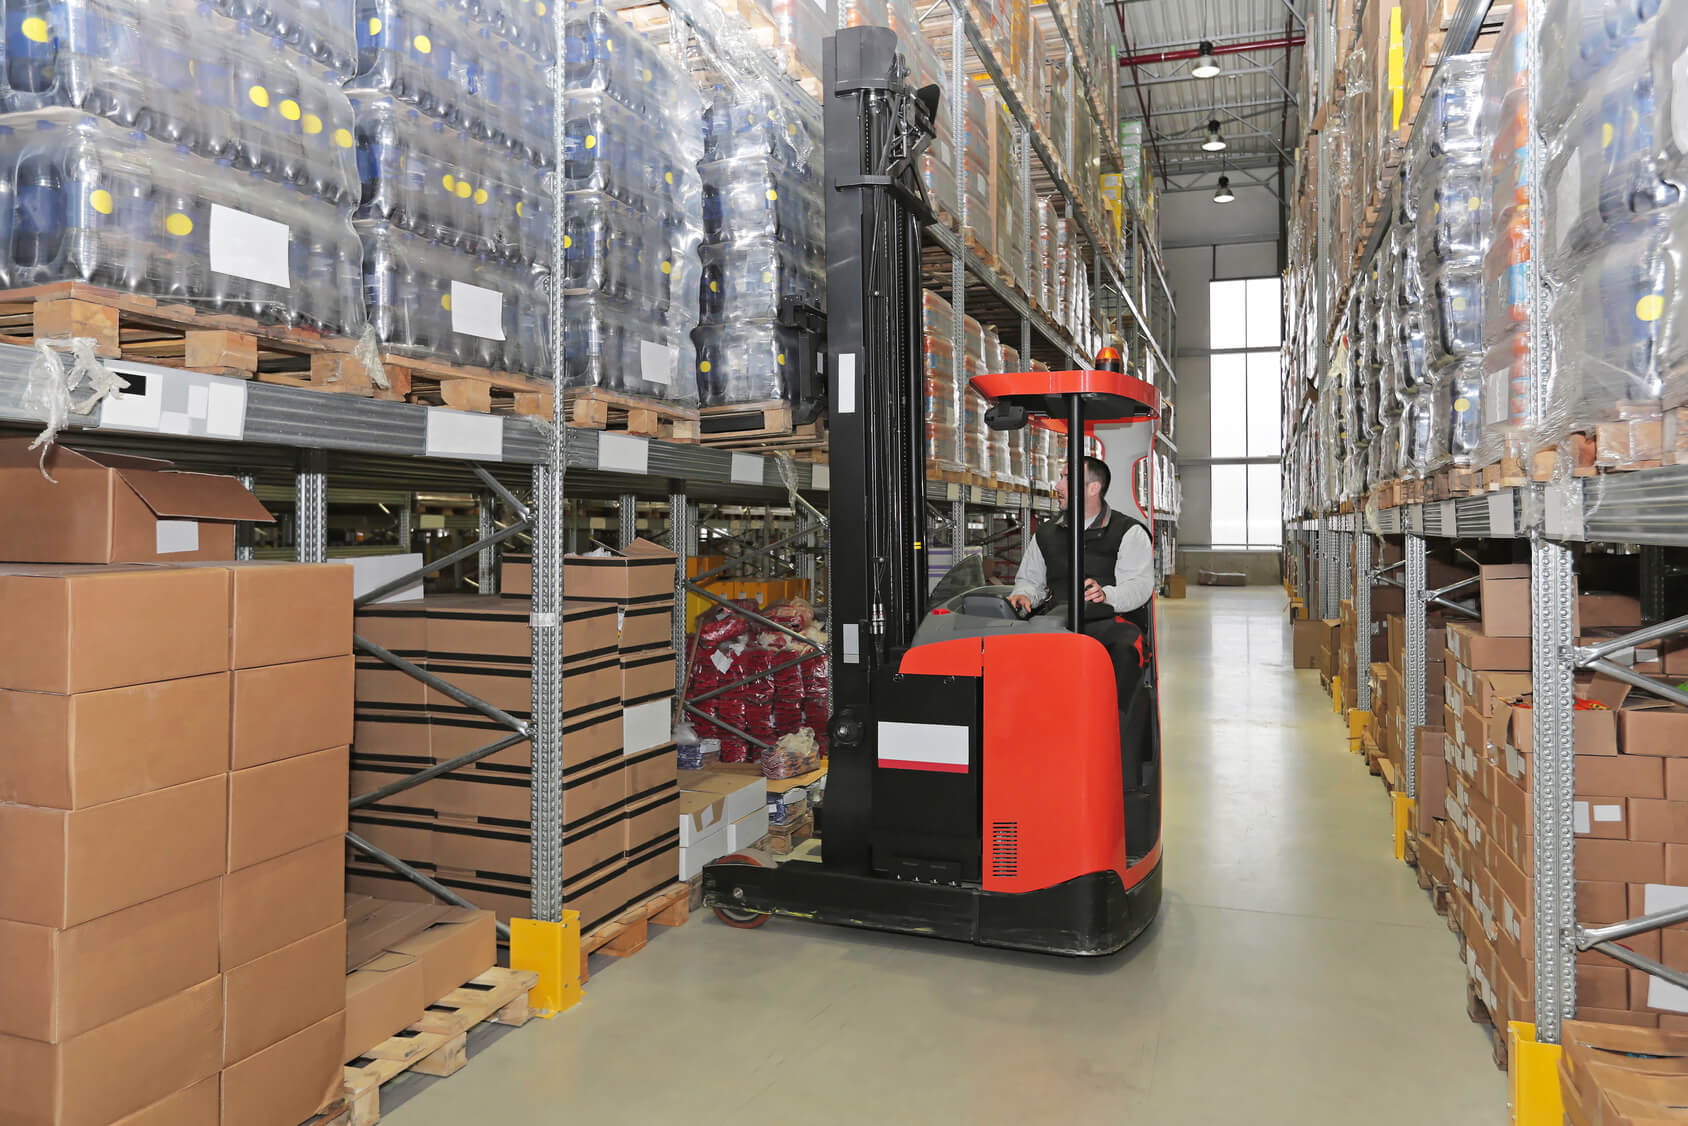 vna-very-narrow-aisle-forklift